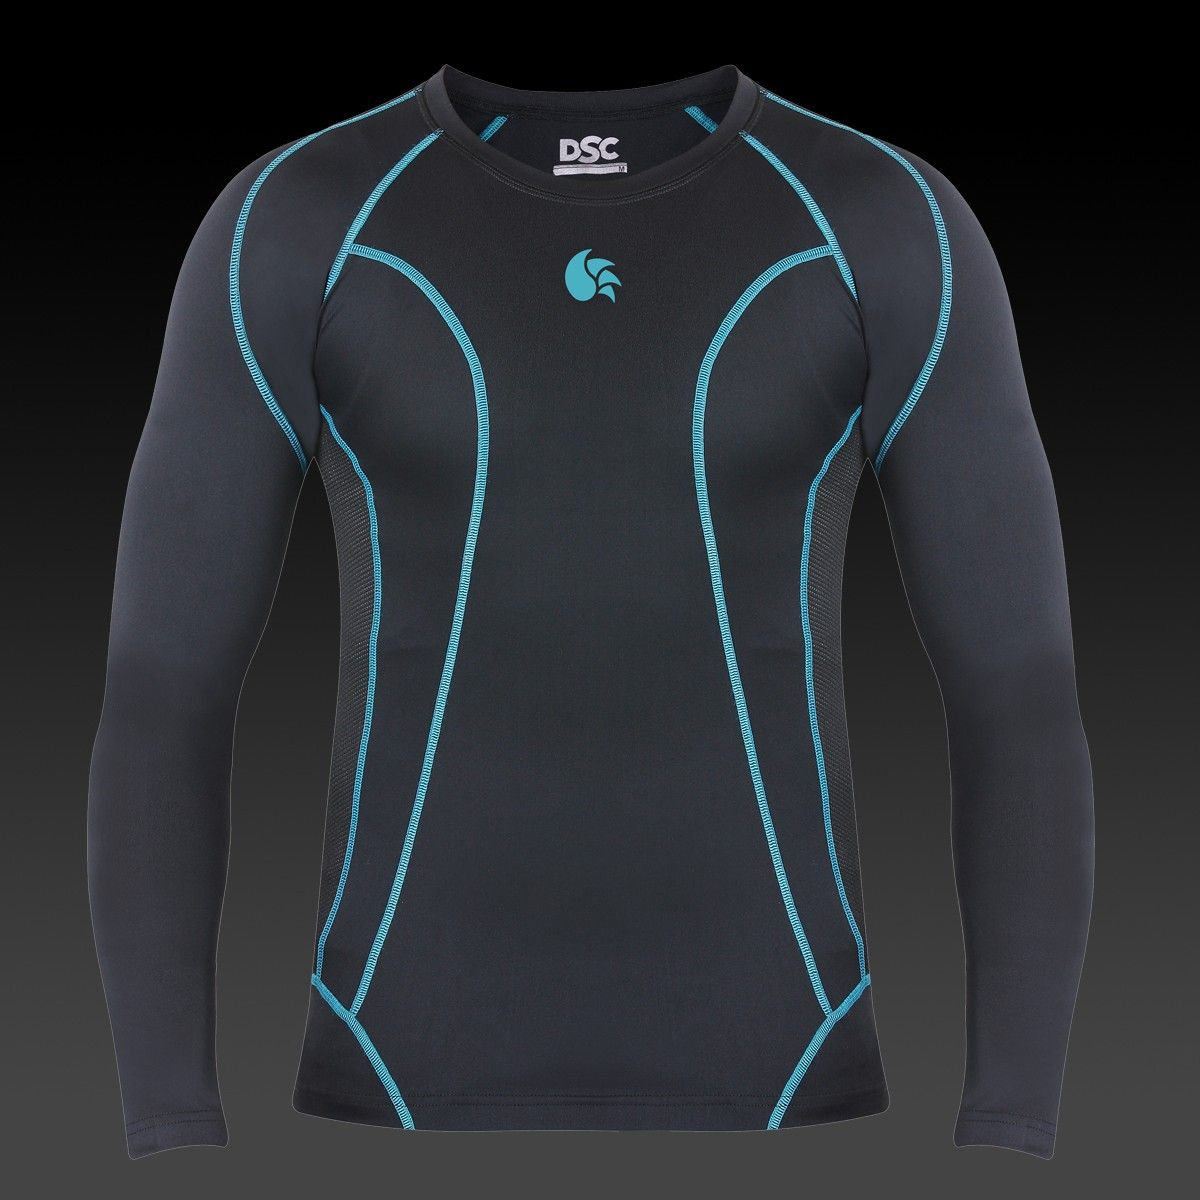 Buy Compression Top Long Sleeve Base Layer Clothing Online At Dsc Cricket Equipment Manufacturer In India Base Layer Clothing Compression Top Tops